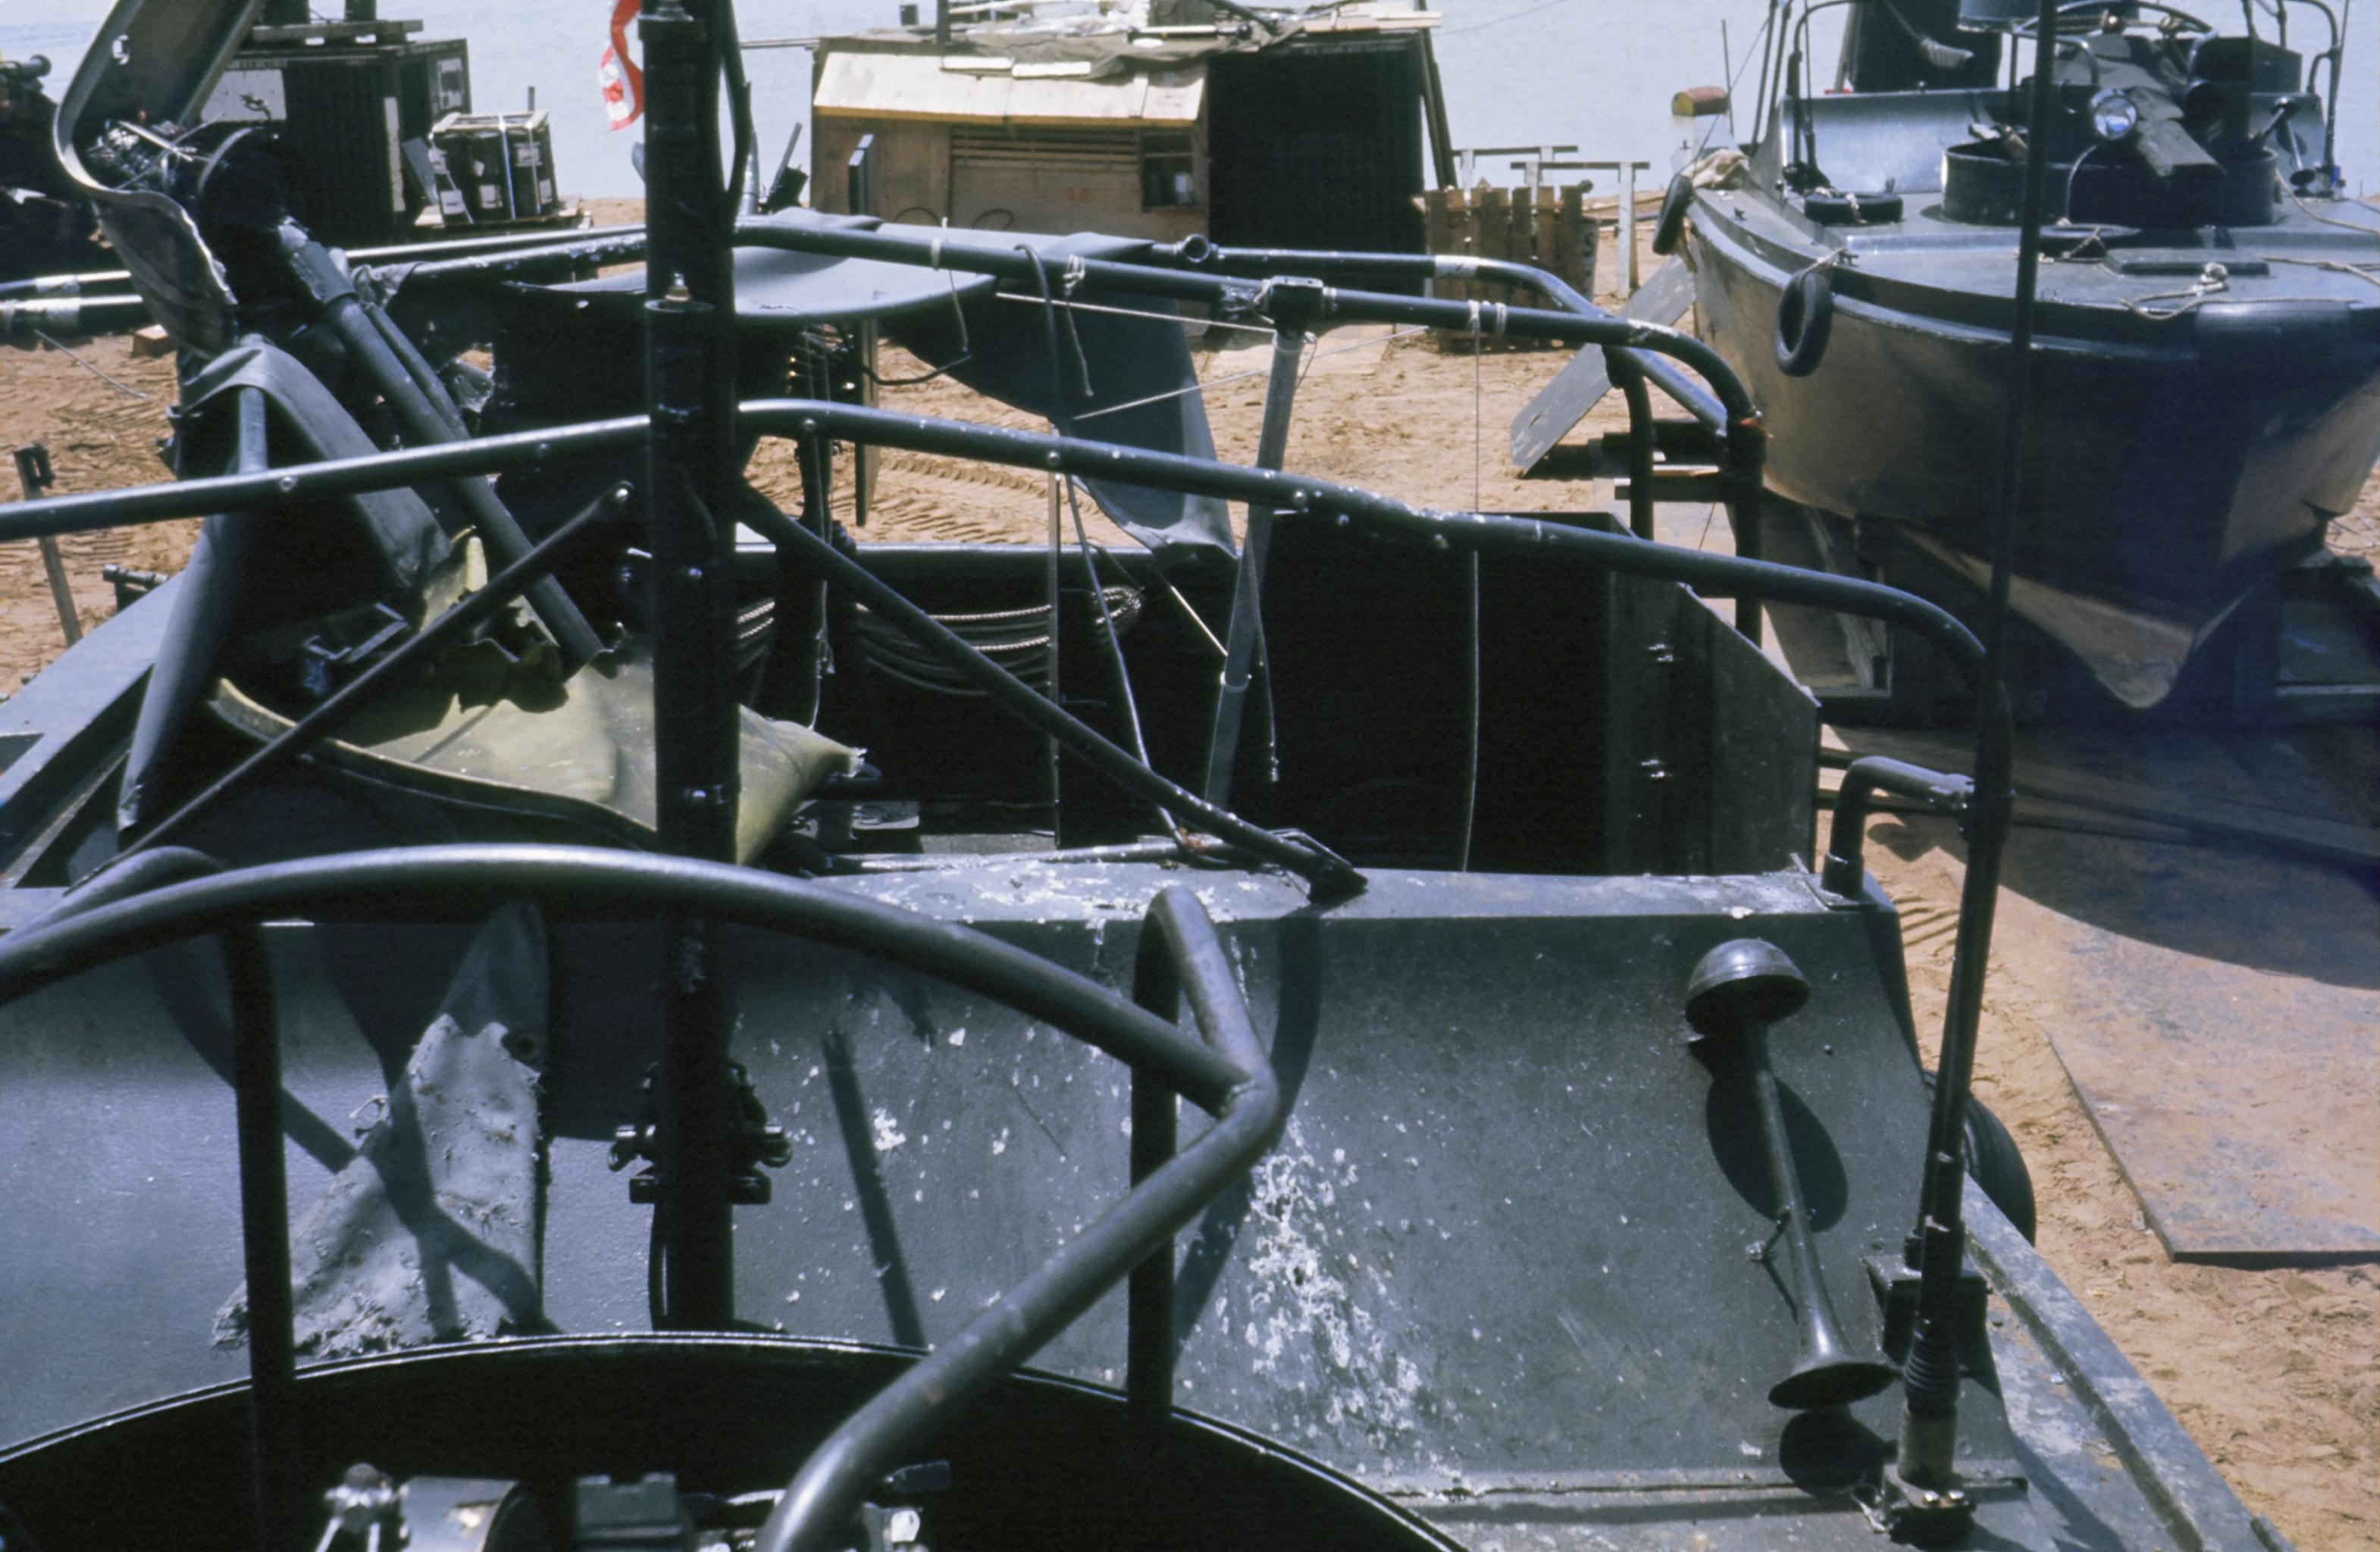 My boat after fire fight June 1967